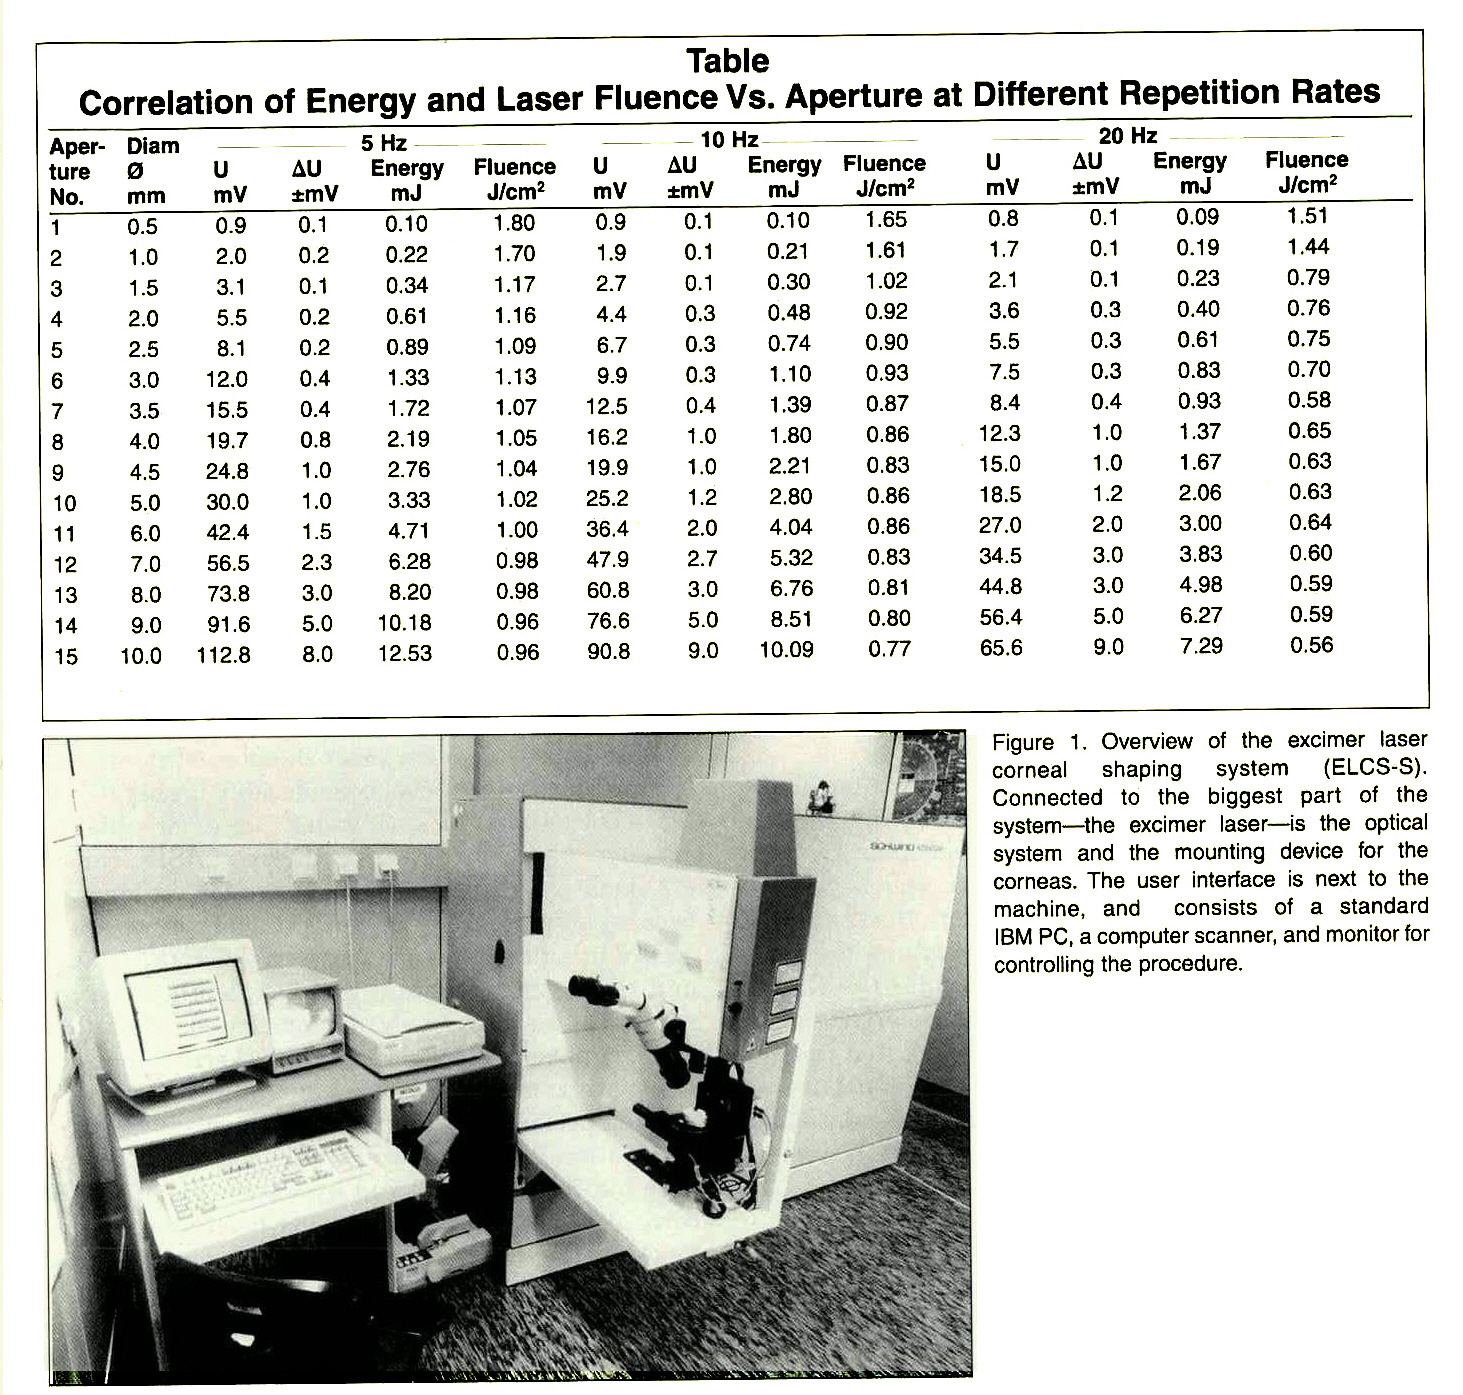 Figure 1. Overview of the excimer laser corneal shaping system (ELCS-S). Connected to the biggest part of the system - the excimer laser - is the optical system and the mounting device for the corneas. The user interface is next to the machine, and consists of a standard IBM PC, a computer scanner, and monitor for controlling the procedure.